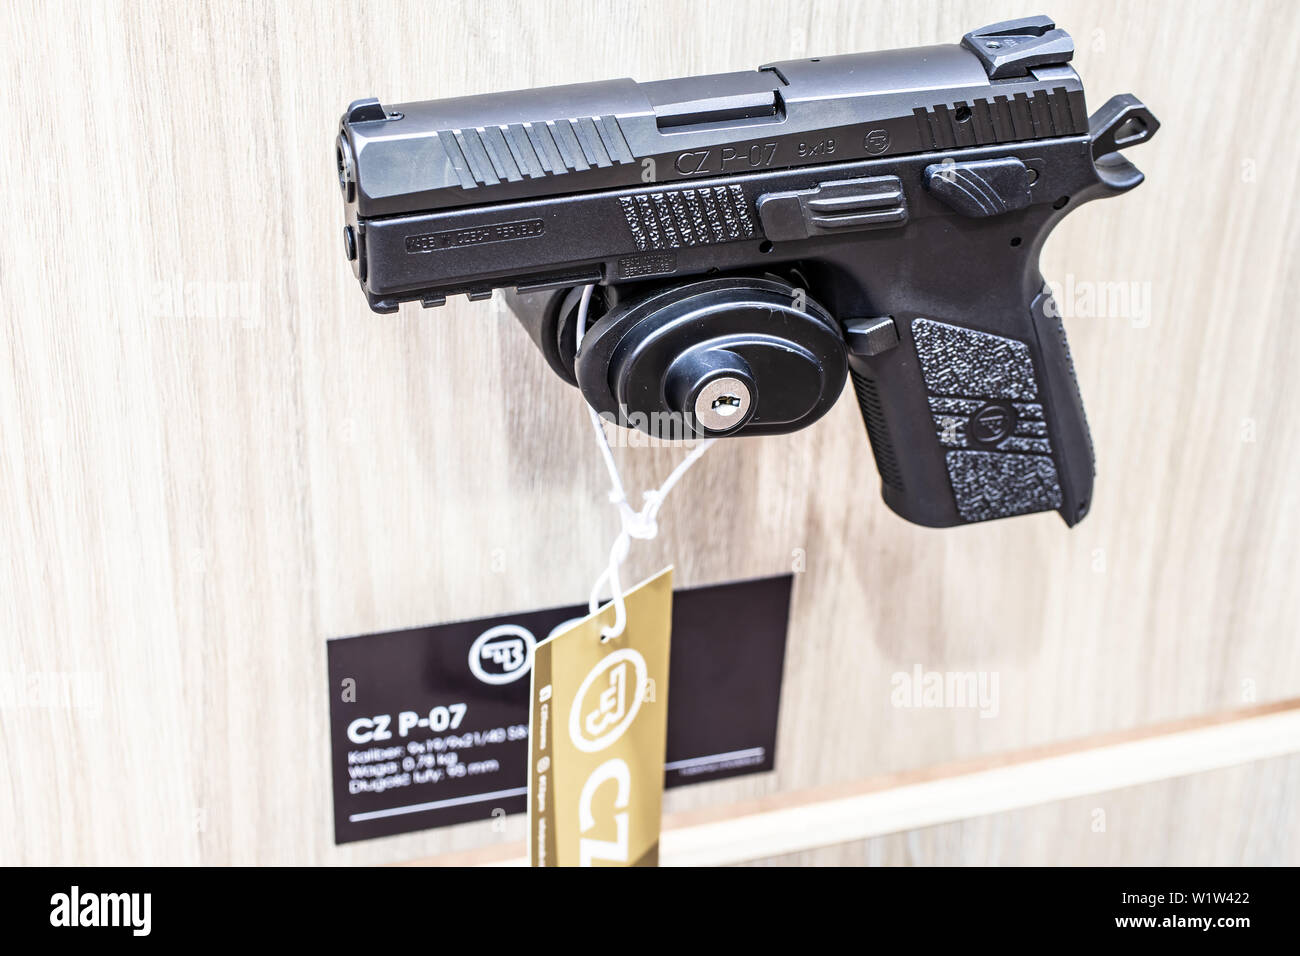 Poznan, Poland, Feb 2019 CZ semi-automatic pistol made by Czech firearm manufacturer CZUB in Czech Republic, exposition, KNIEJE Hunting shooting fair - Stock Image